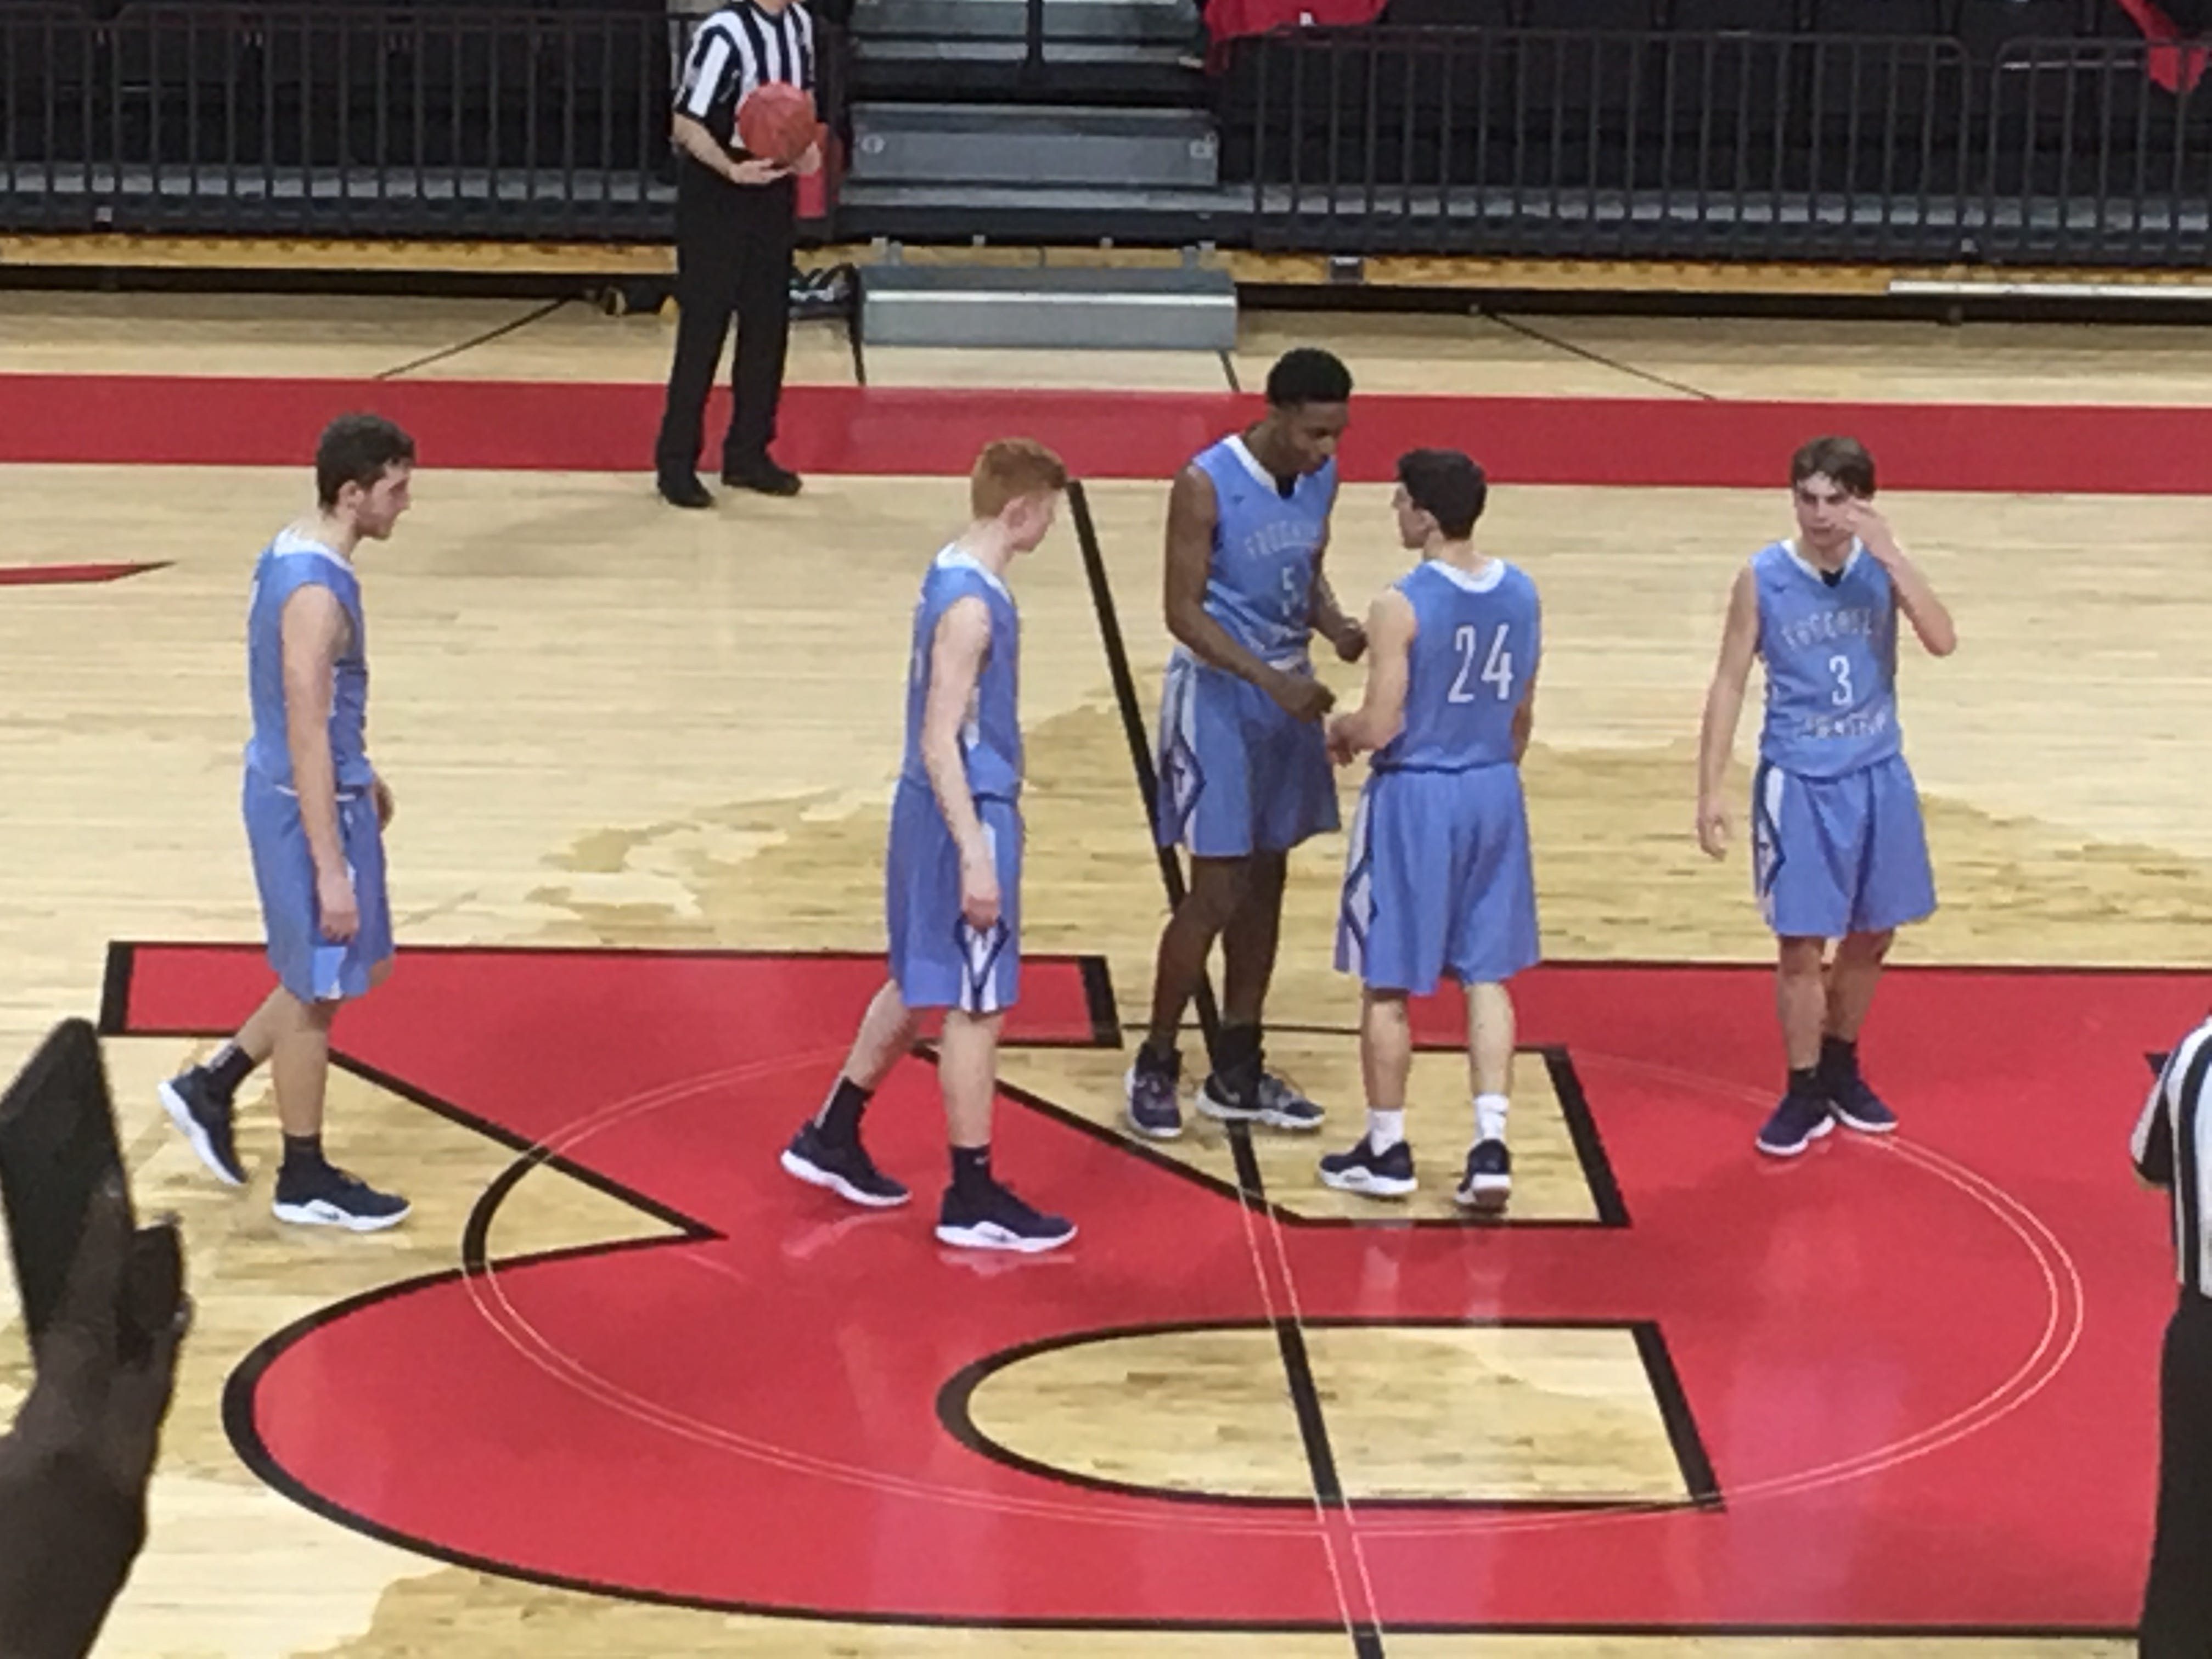 The Freehold Township boys basketball team discusses strategy to start the 3rd quarter in the Group IV State Final at Rutgers University on March 10, 2019